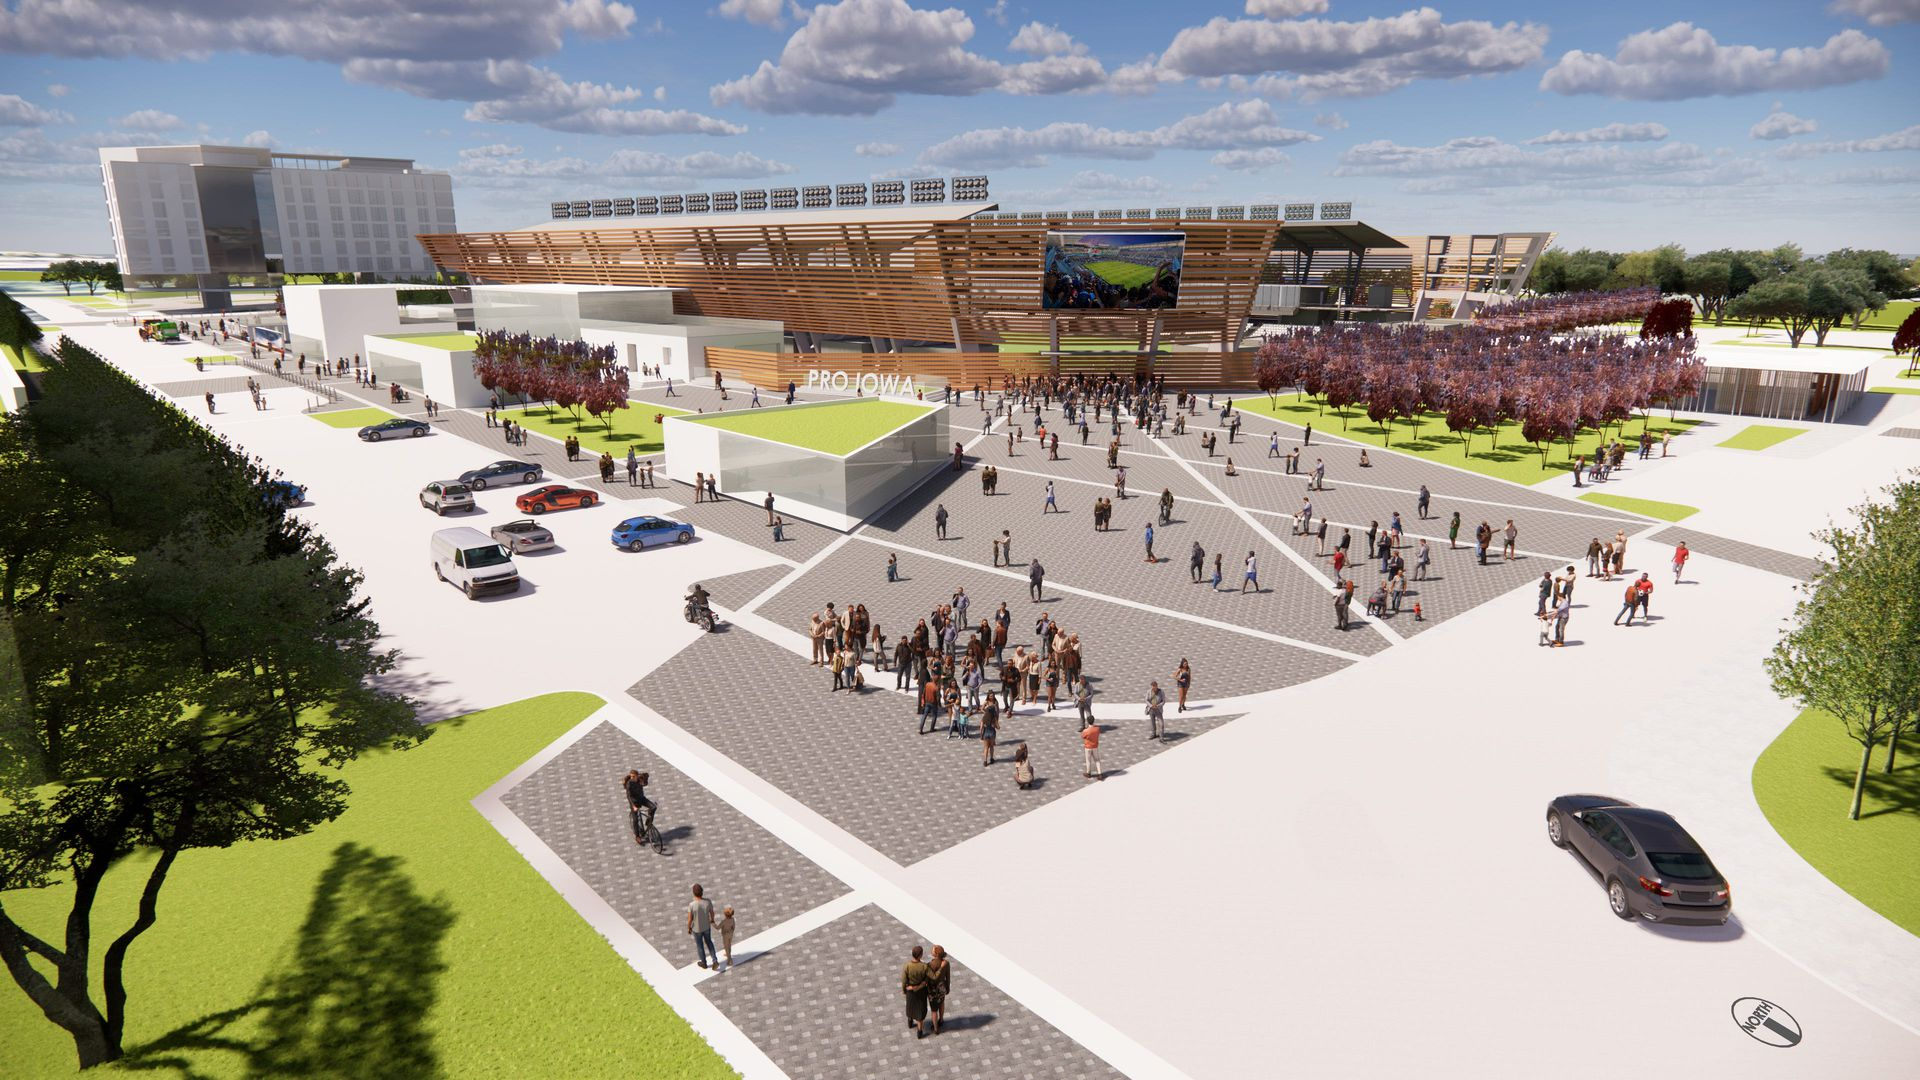 The Pro Iowa Stadium Global Plaza will be a festival hub for Des Moines.